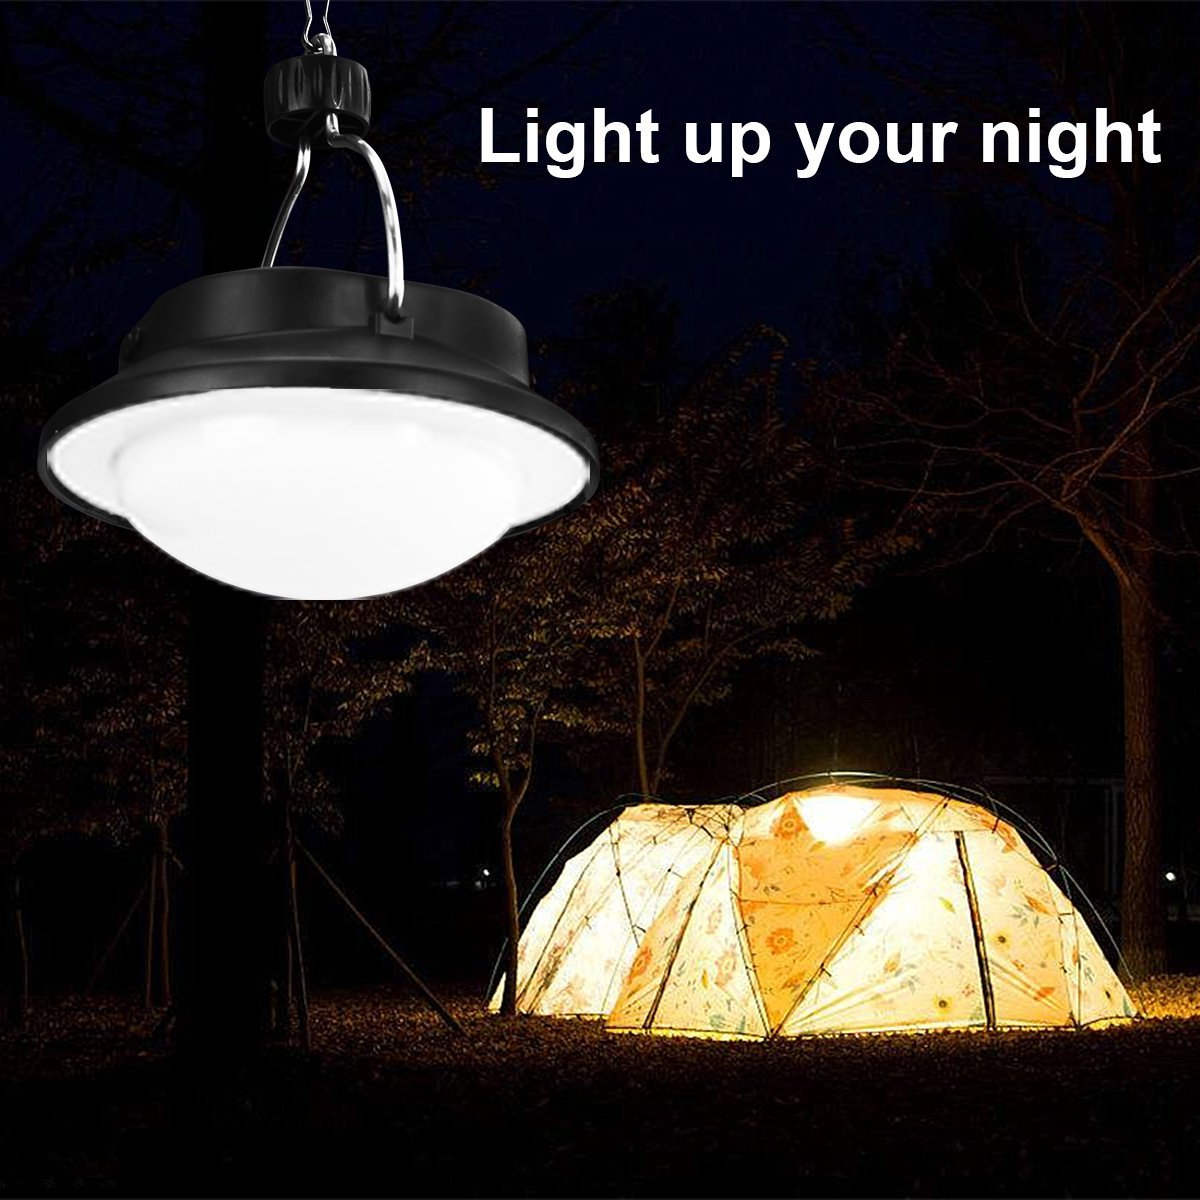 Portable Outdoor Solar Lights Set, Ultra Bright LED Tent Lights for Tent, Camping, Hiking, Travel, Exploration and Home Yard,